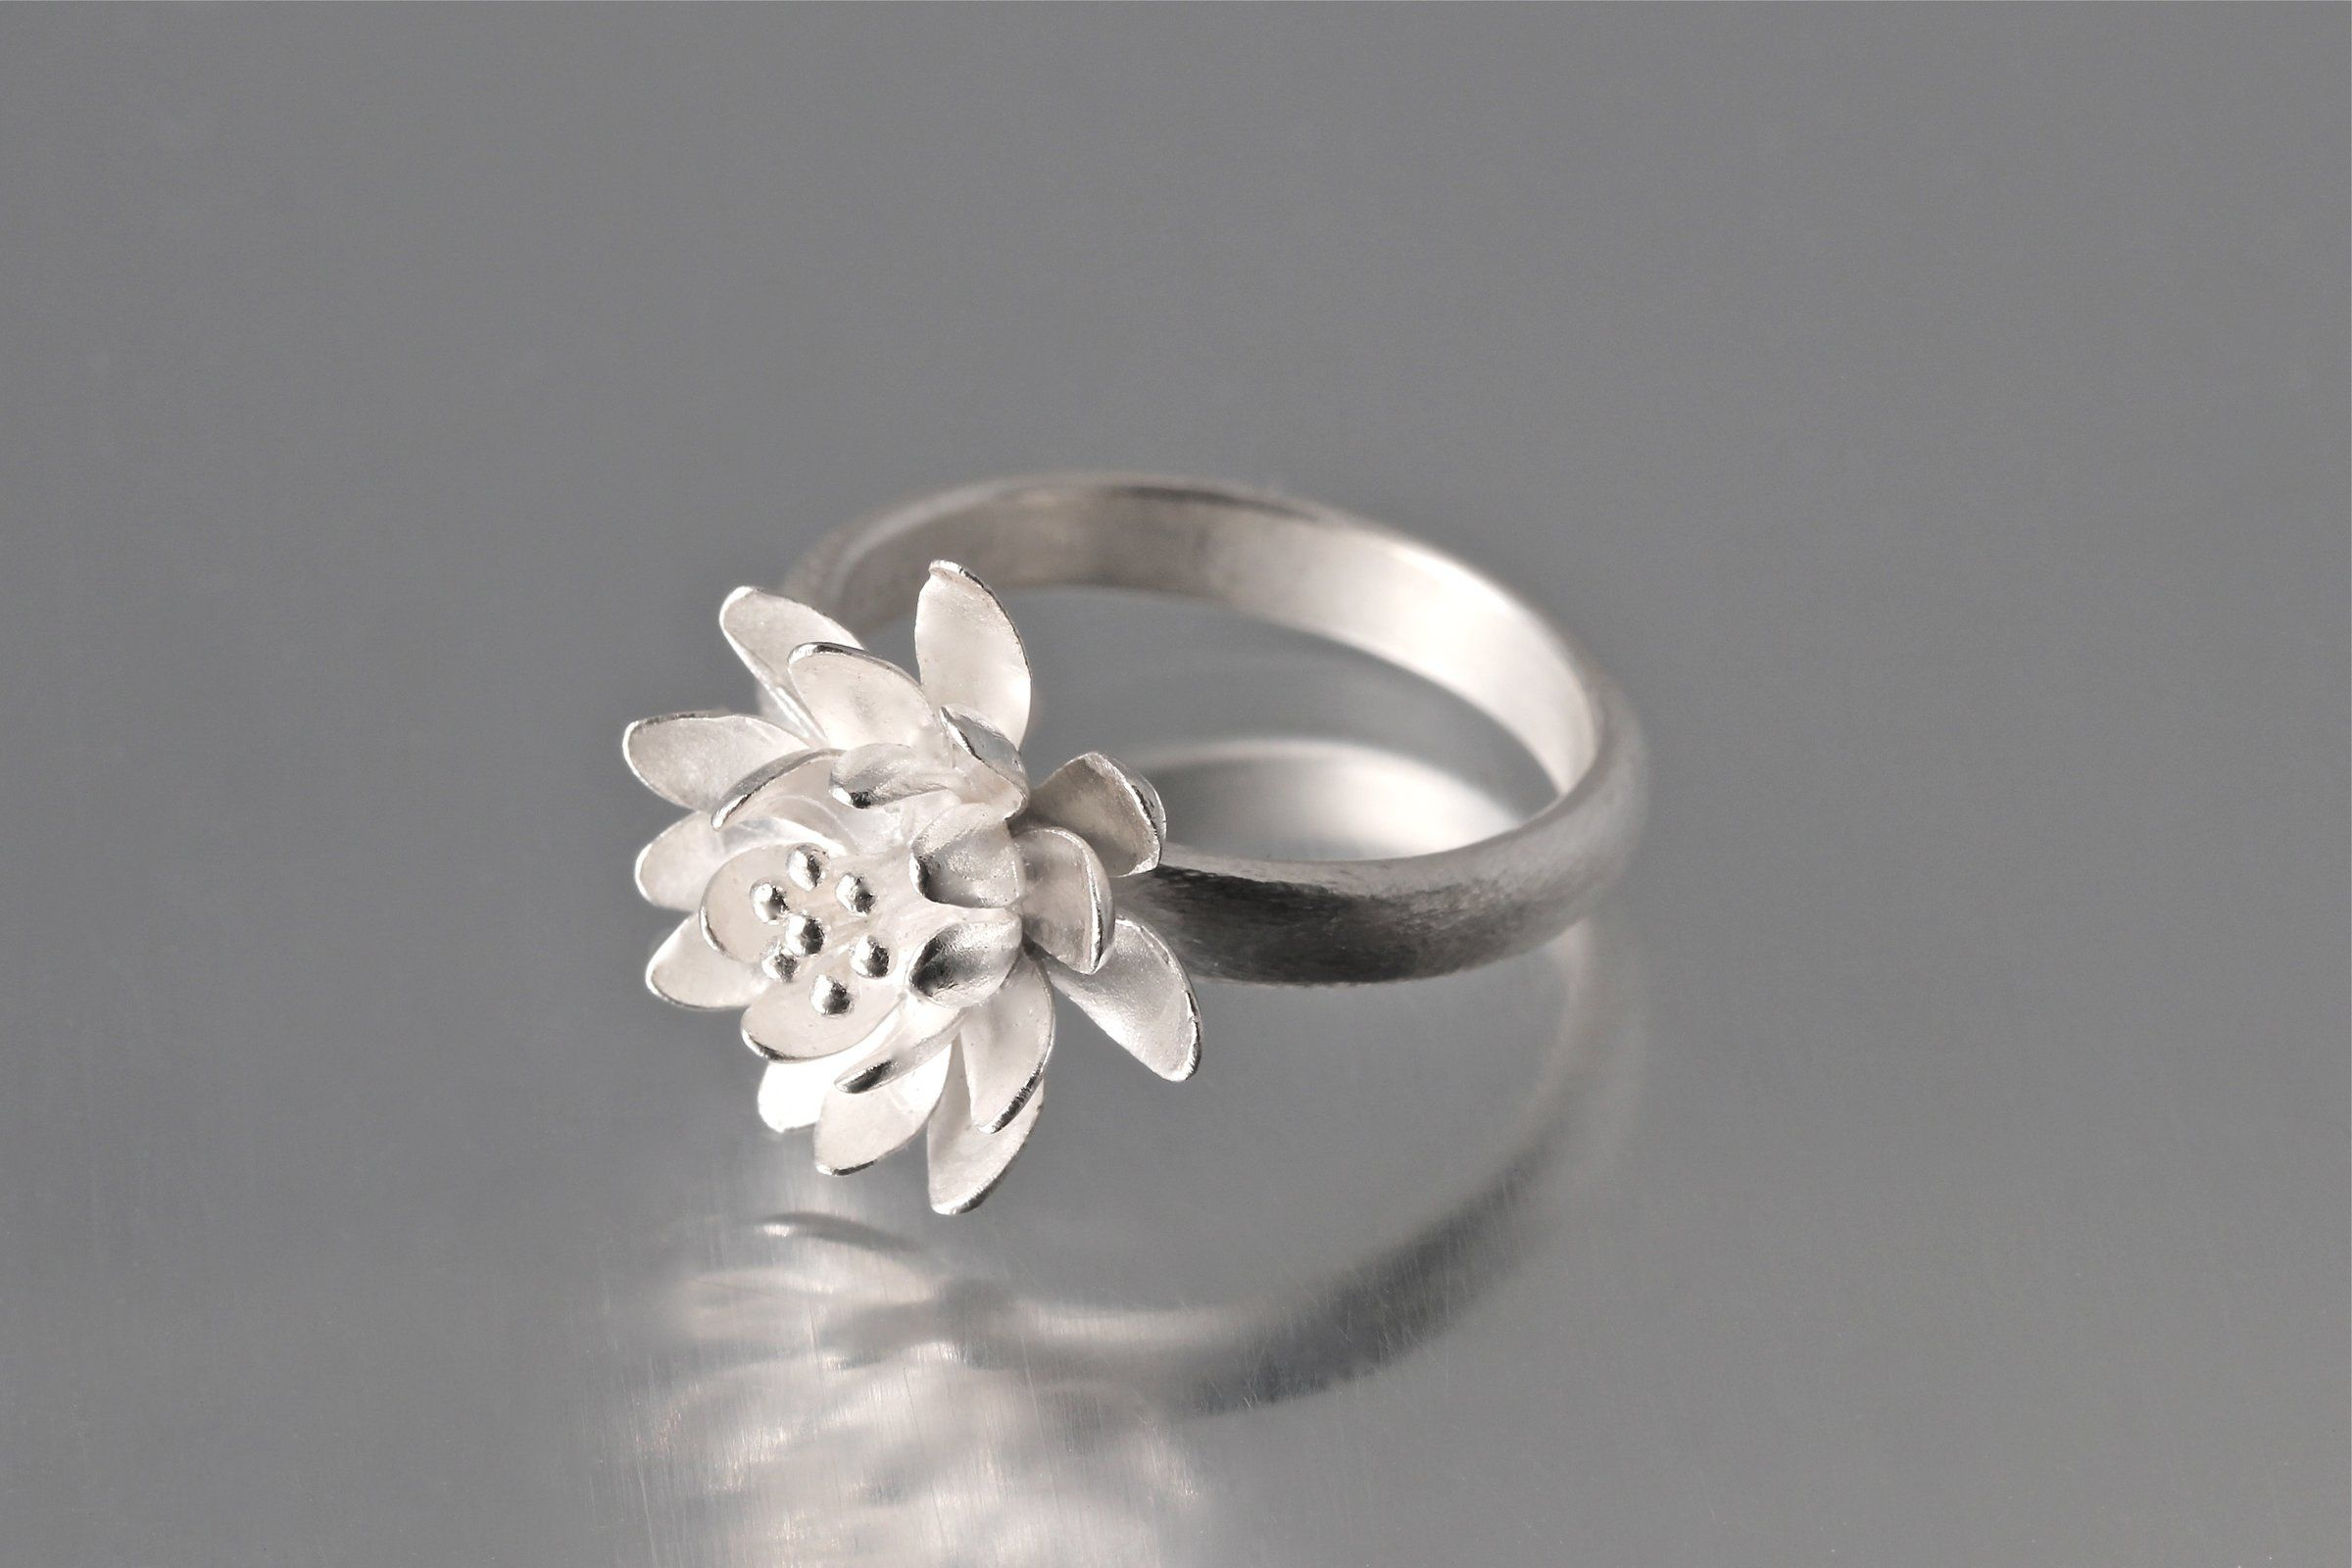 Handmade Silver Ring Set Women Jewelry Unique Gift for Her Floral Design Sterling Silver Topaz Rings Set Towards the Cold Sun